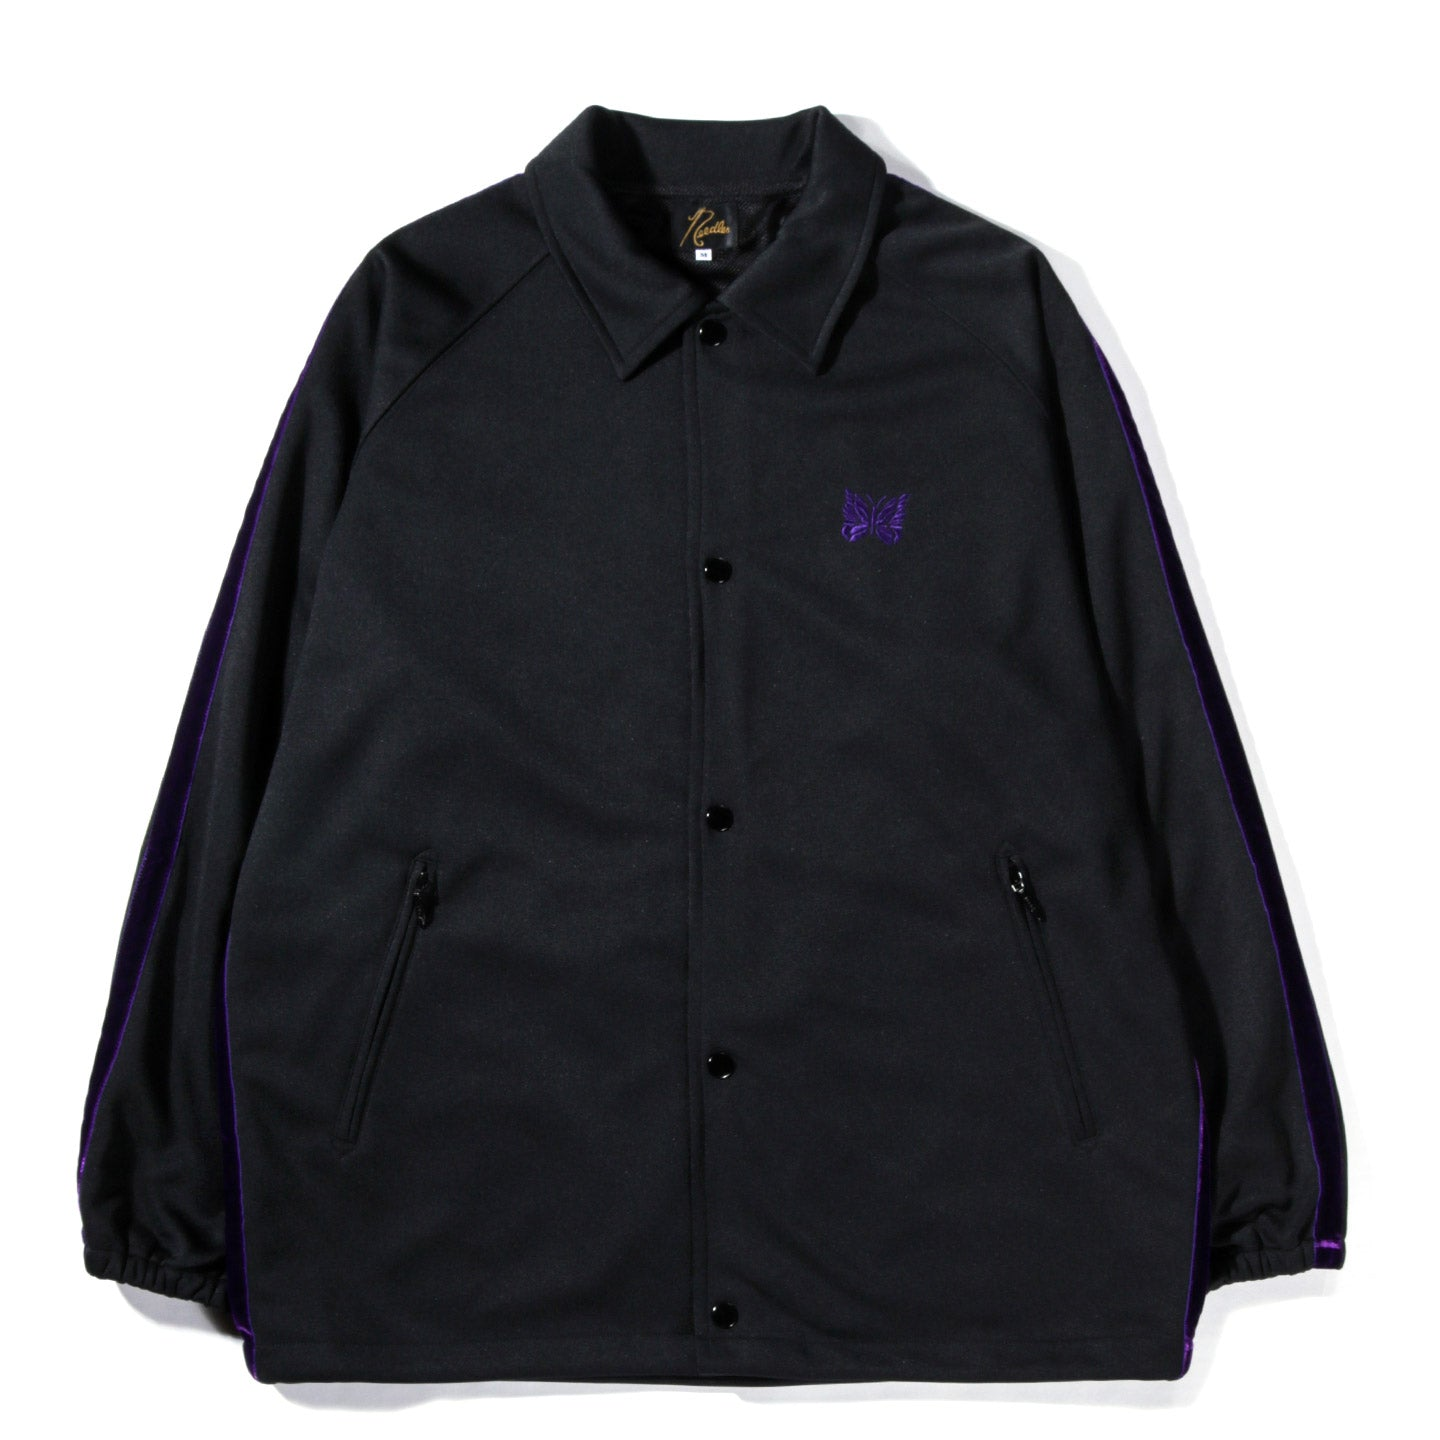 NEEDLES SIDE LINE COACH JACKET POLY SMOOTH BLACK